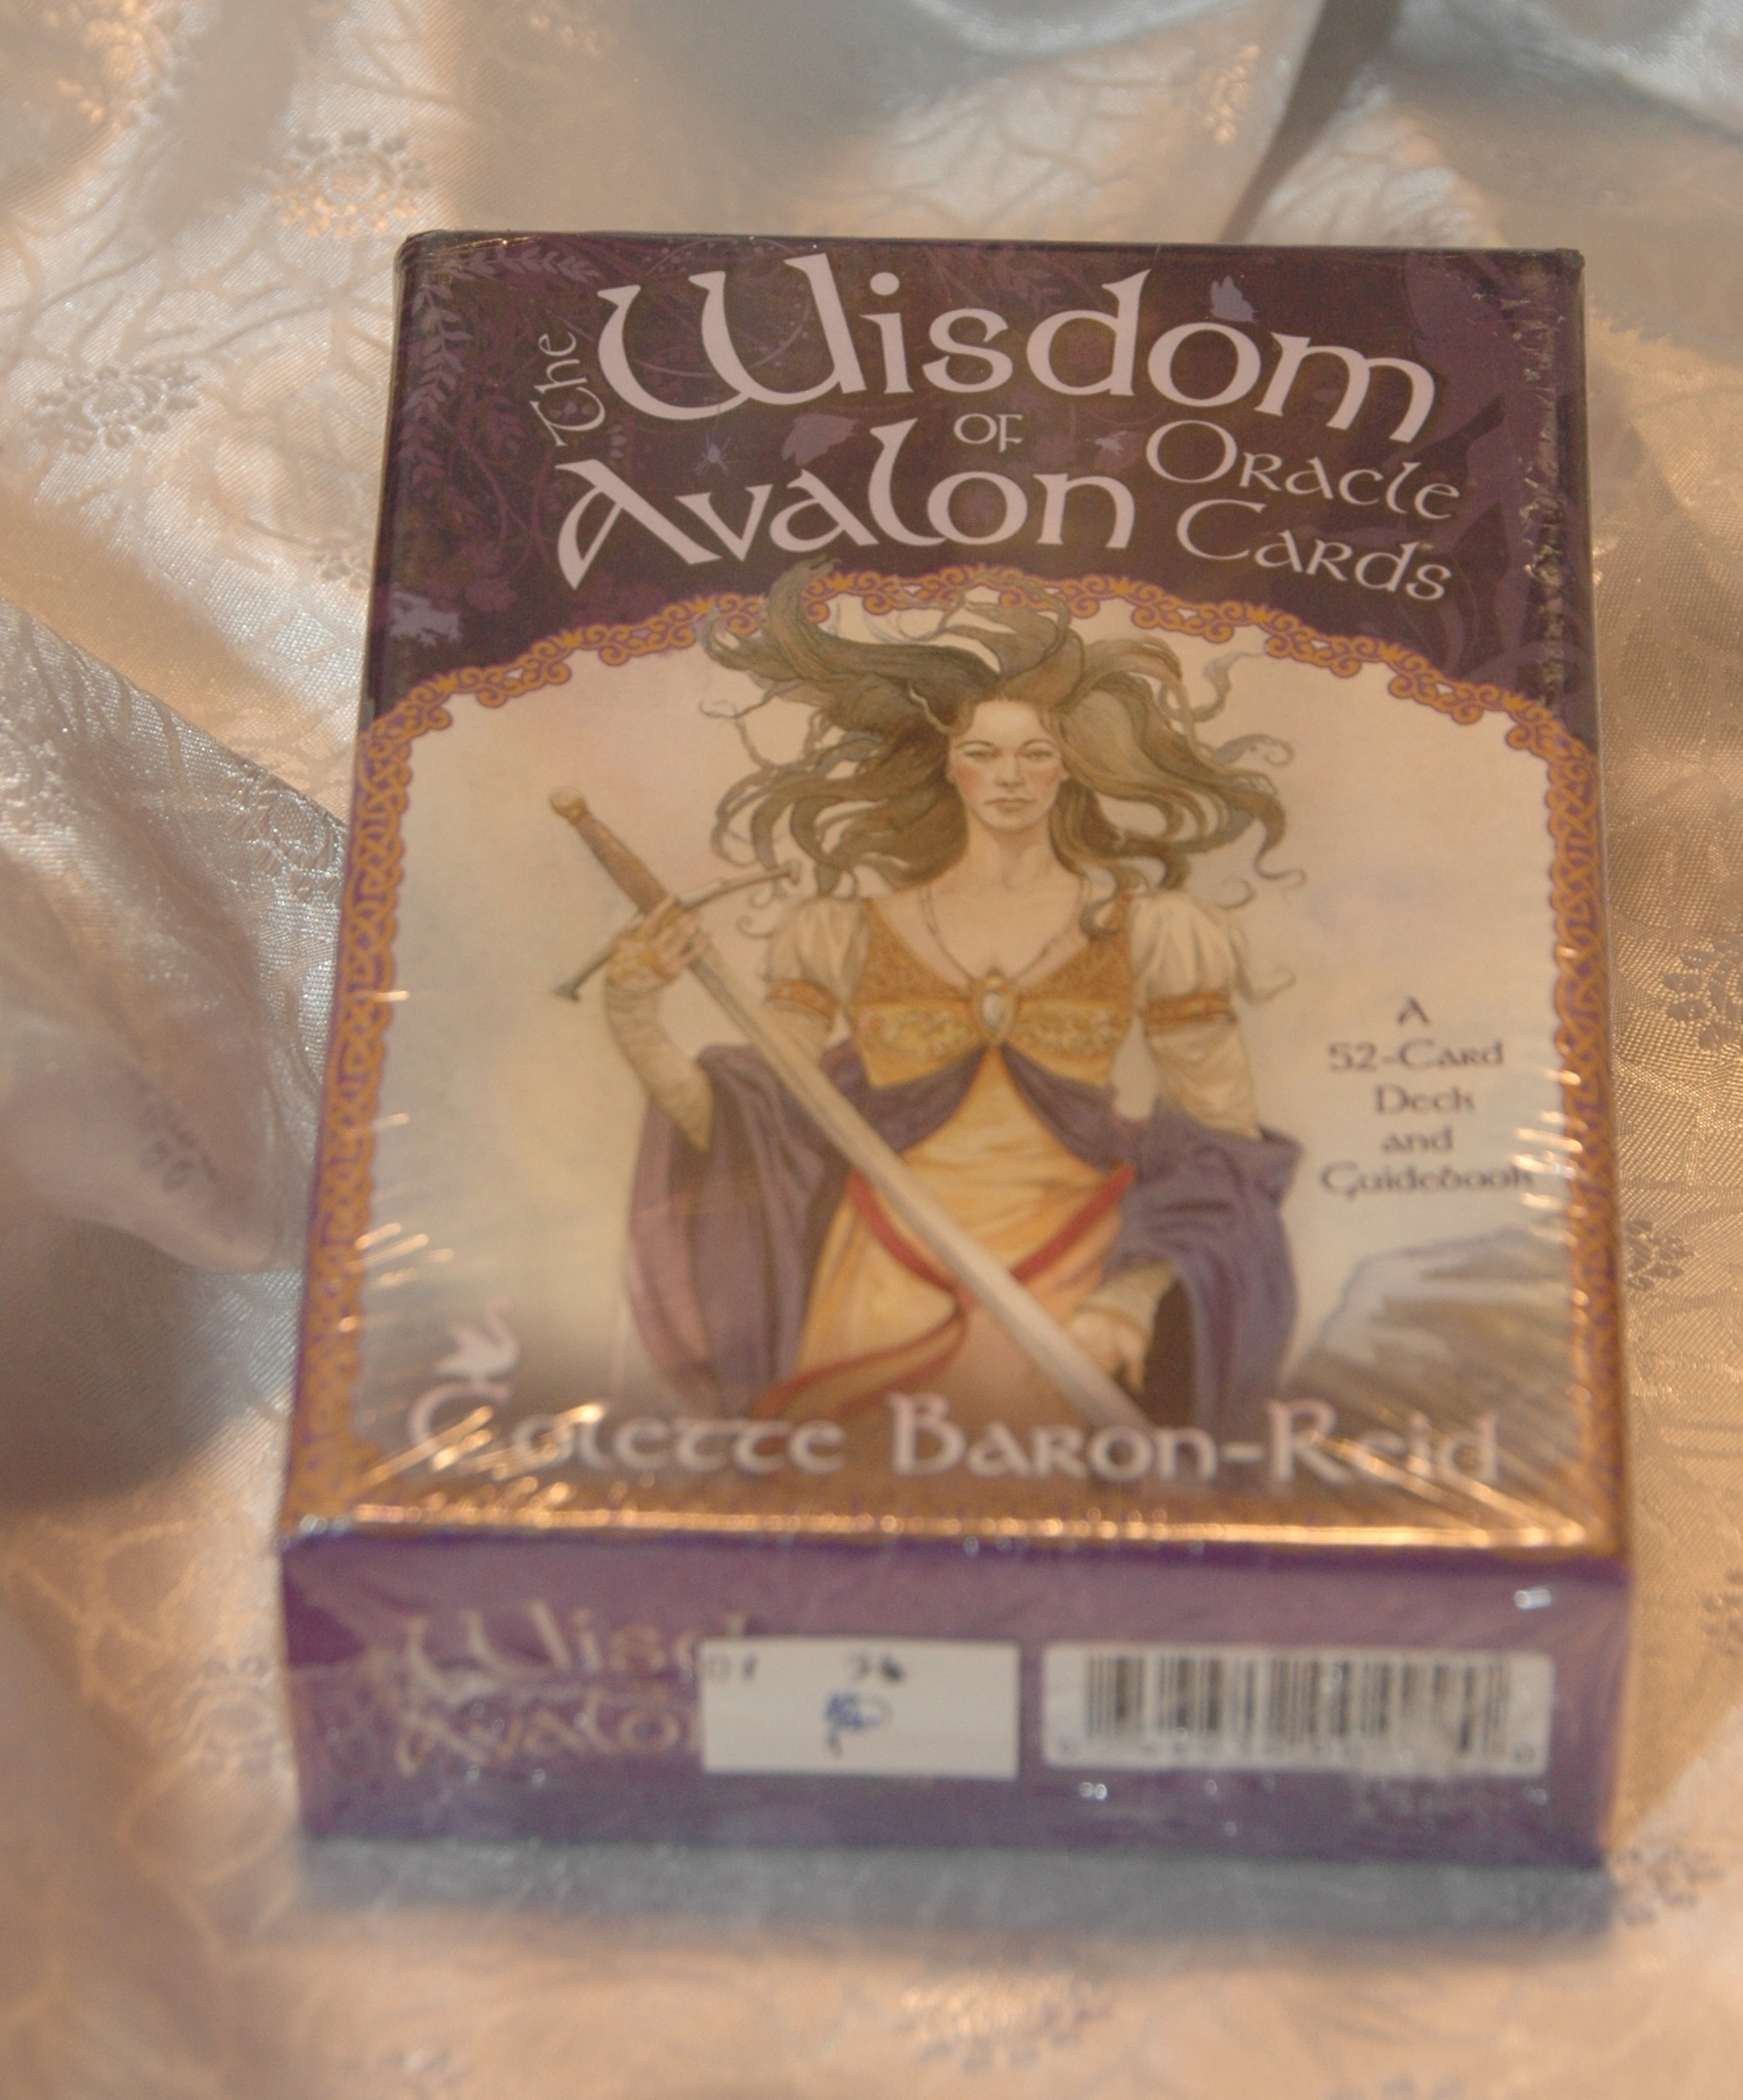 DV54 WISDOM OF THE REALMS ORACLE CARDS- £7.25